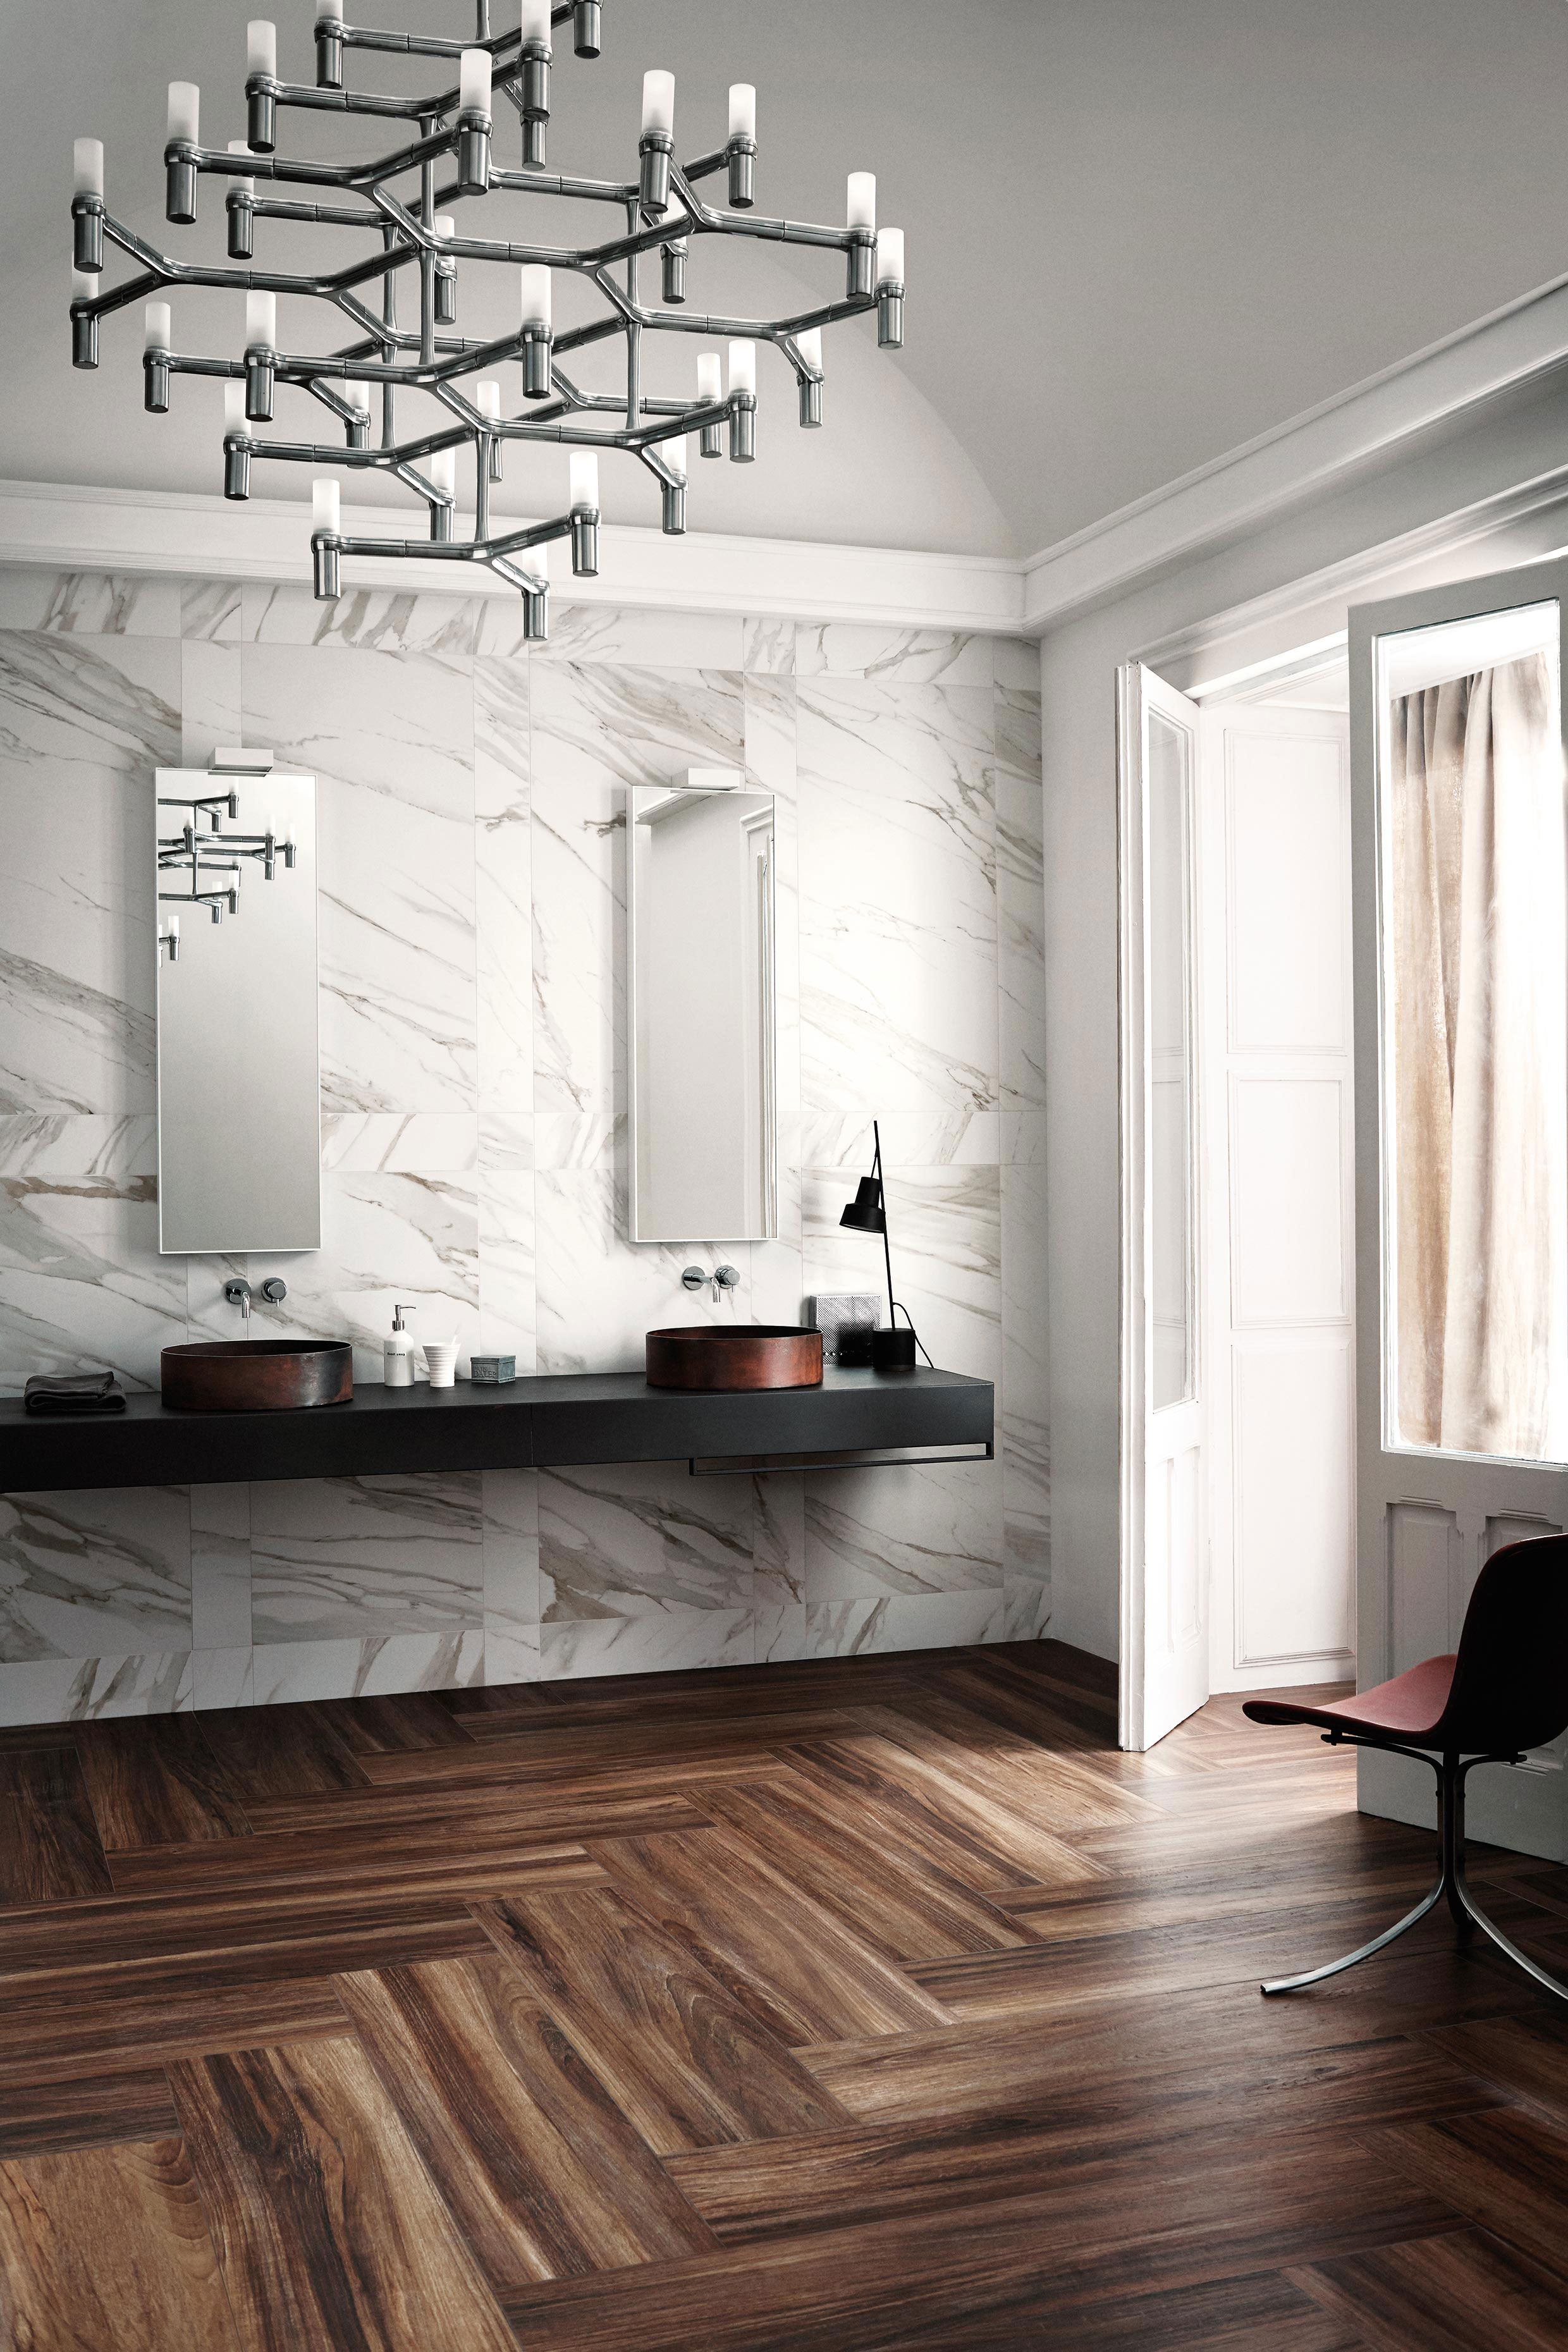 Example of wood tone floor with marble wall